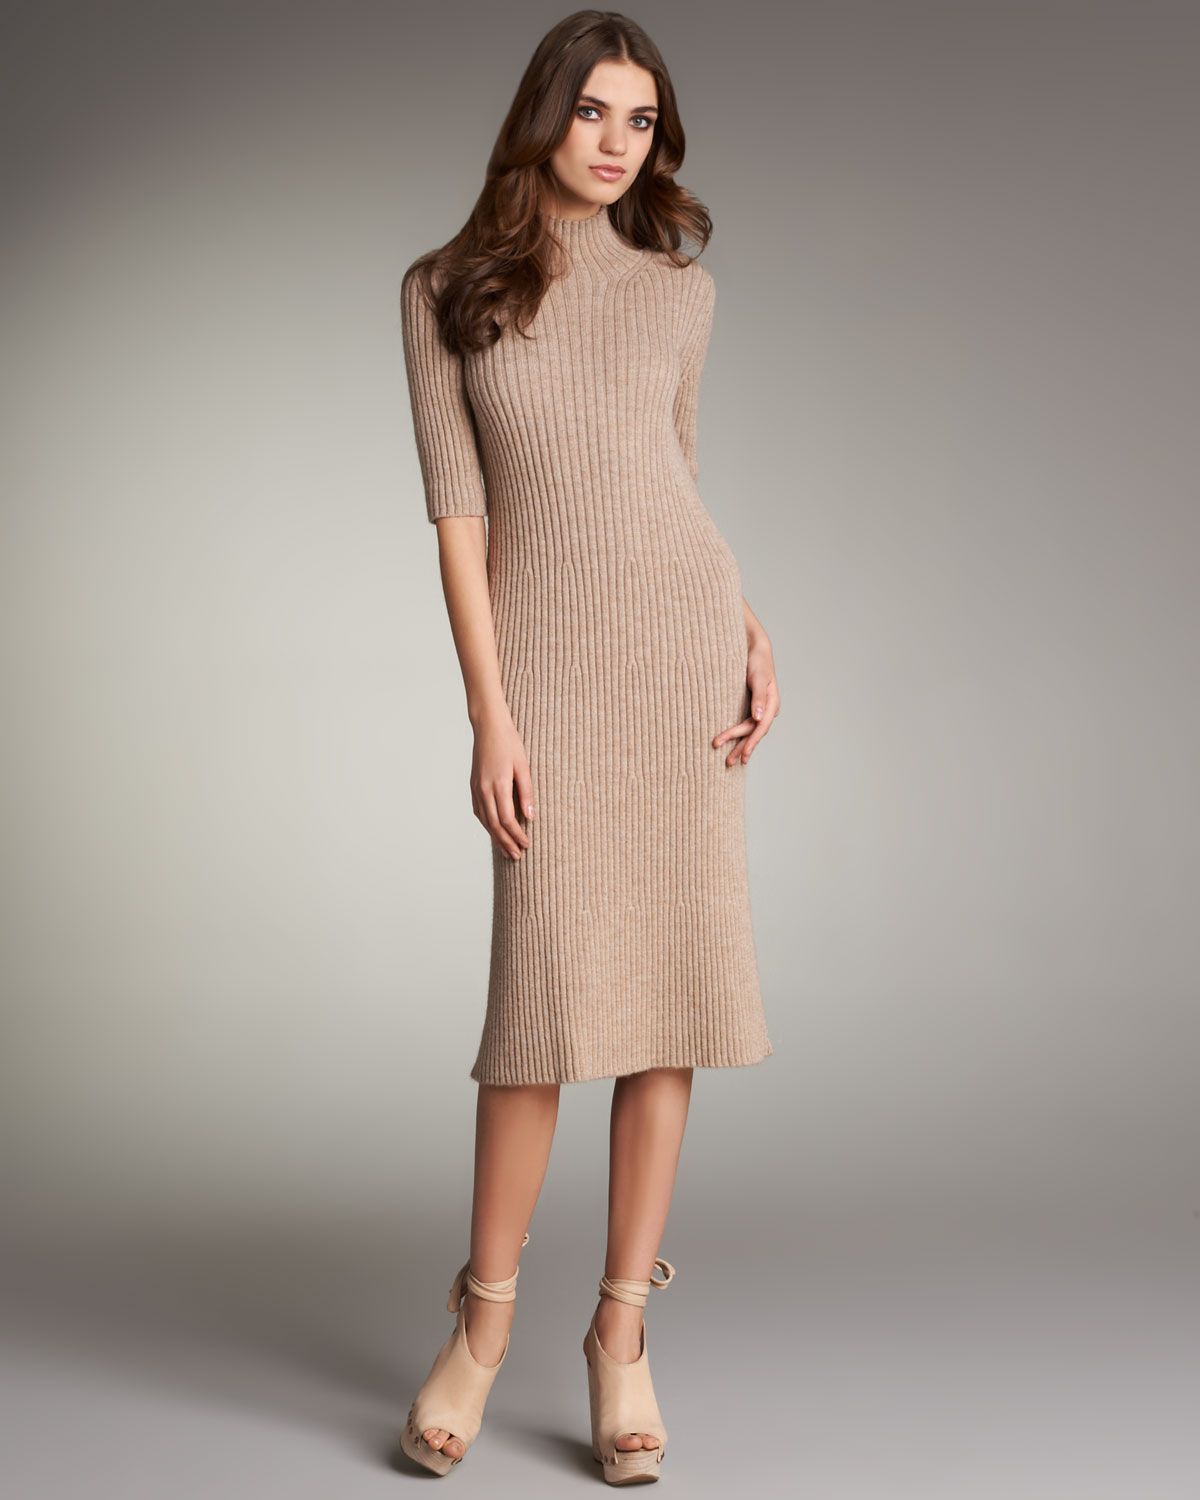 Chloé Ribbed Sweater Dress in Natural | Lyst